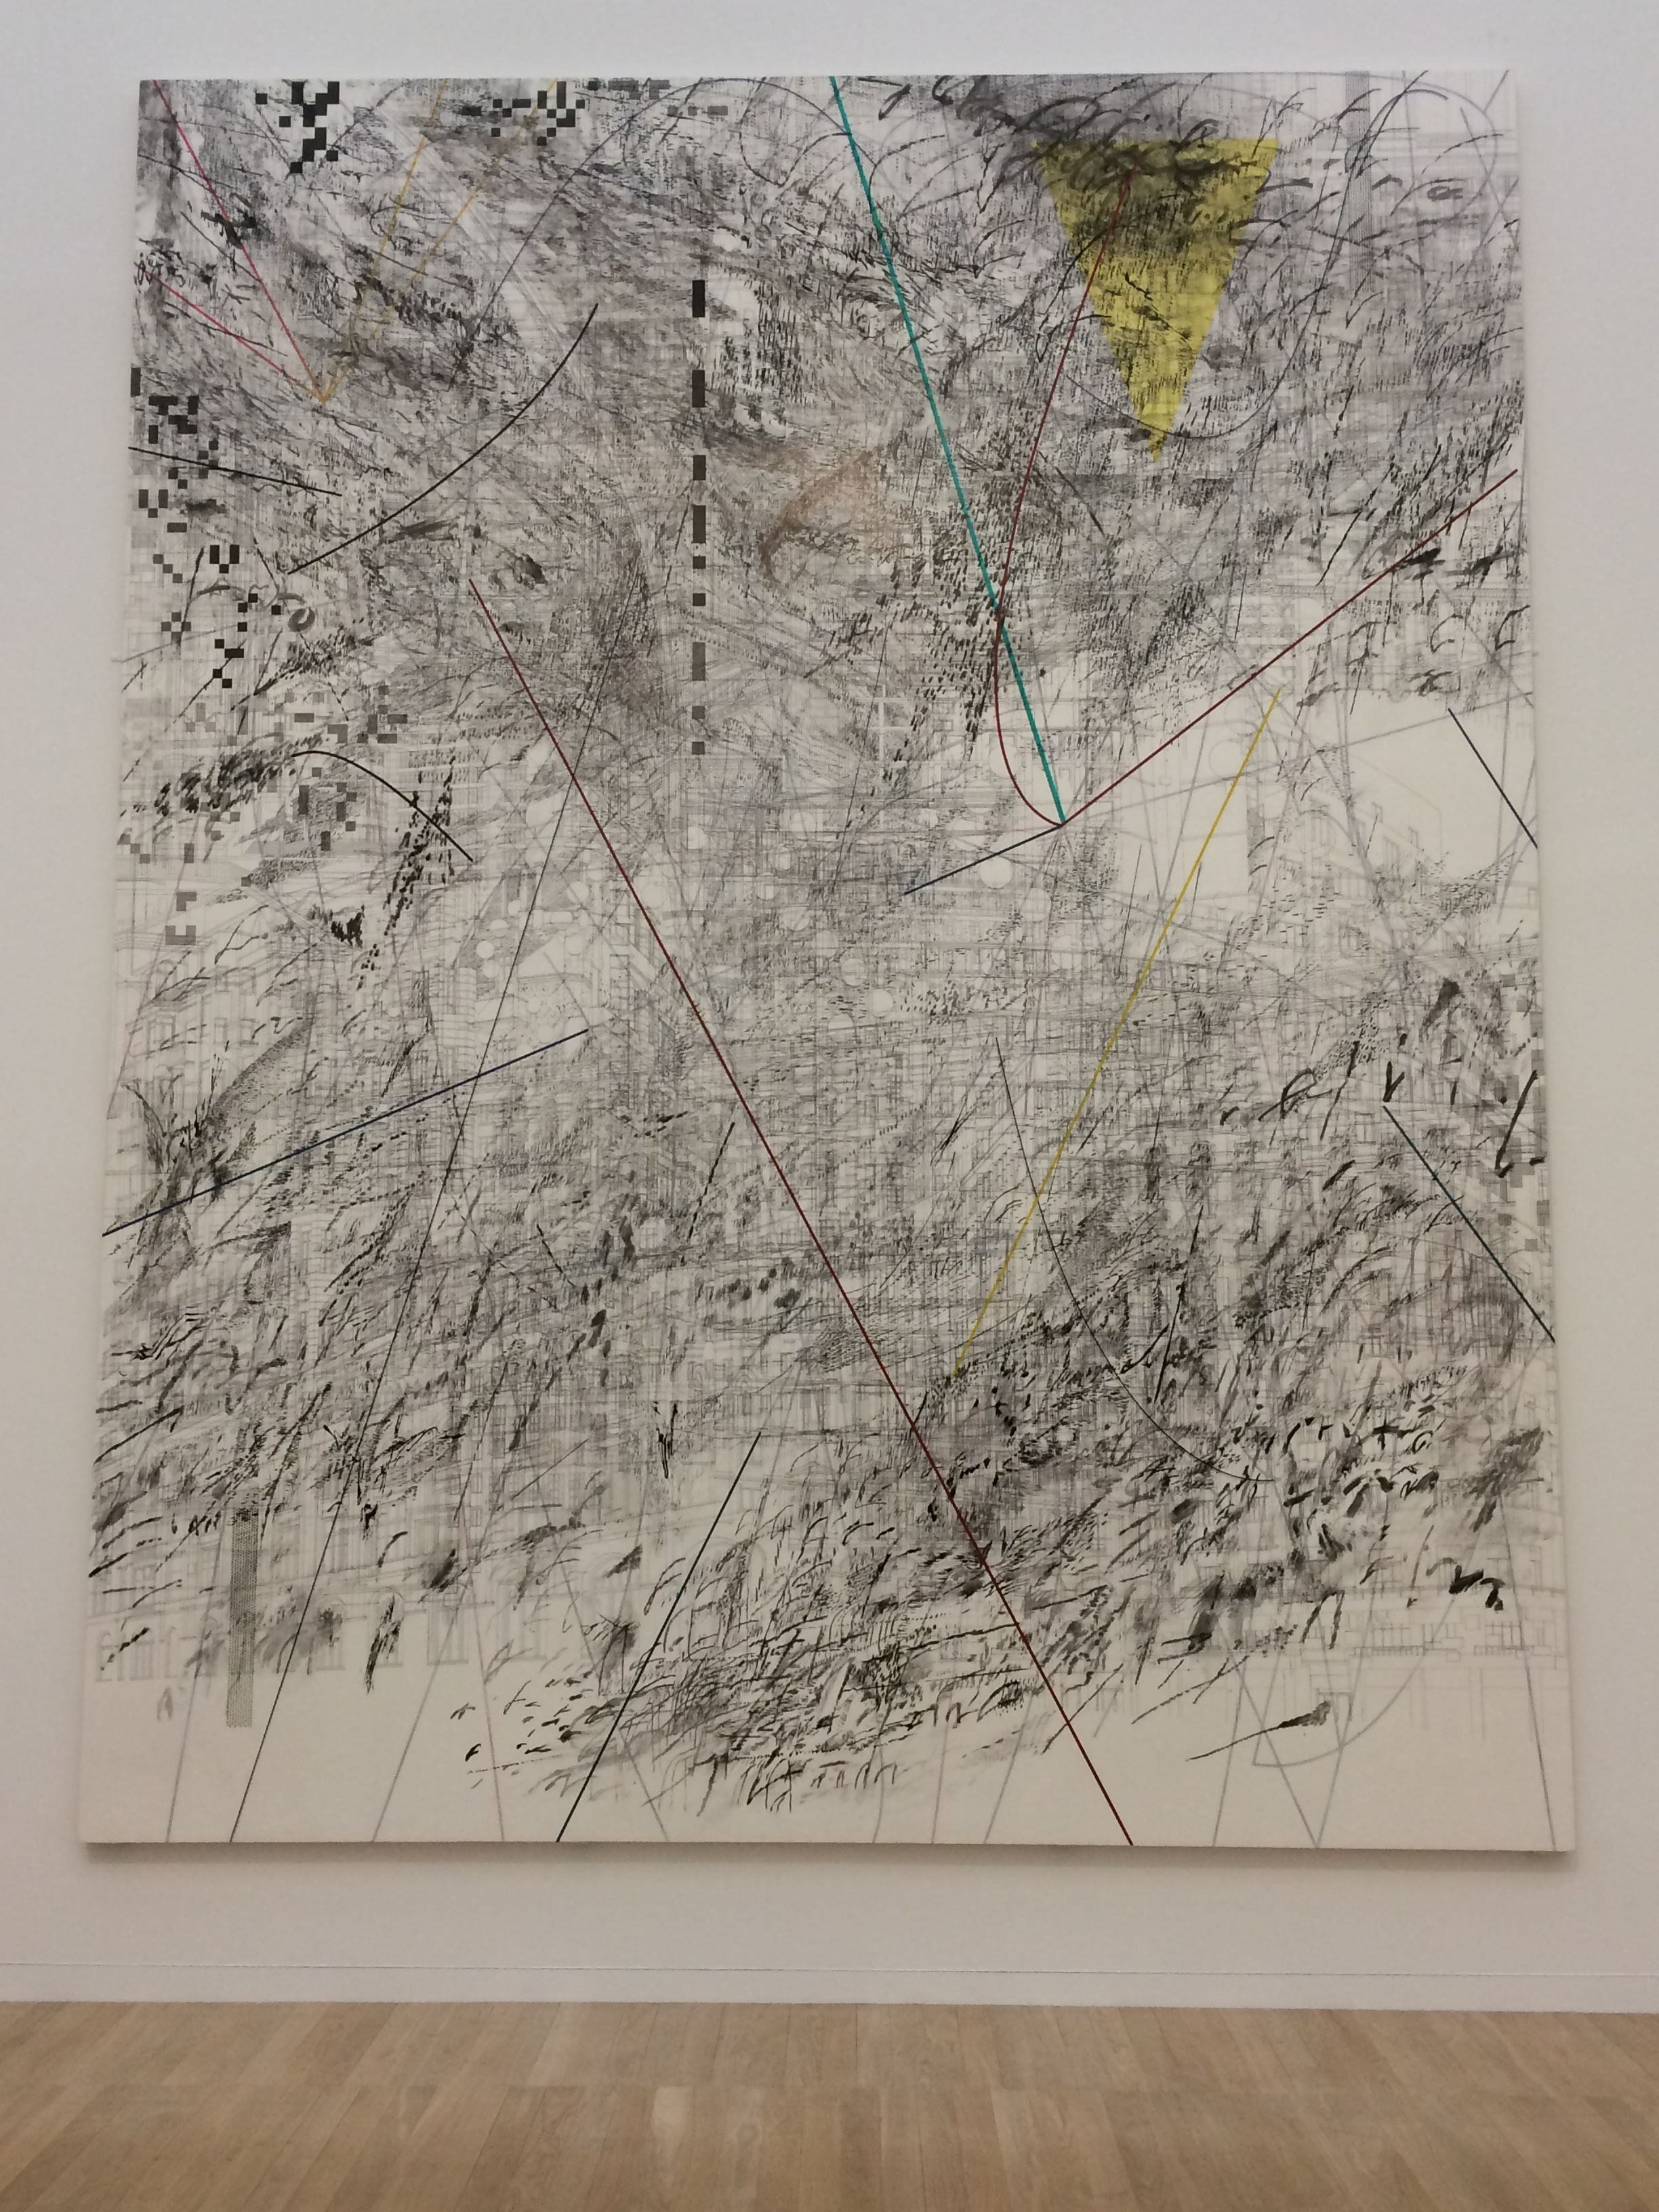 Julie Mehretu, 'Mogamma, A Painting in Four Parts: Part 3' (2012) Ink and acrylic paint on canvas